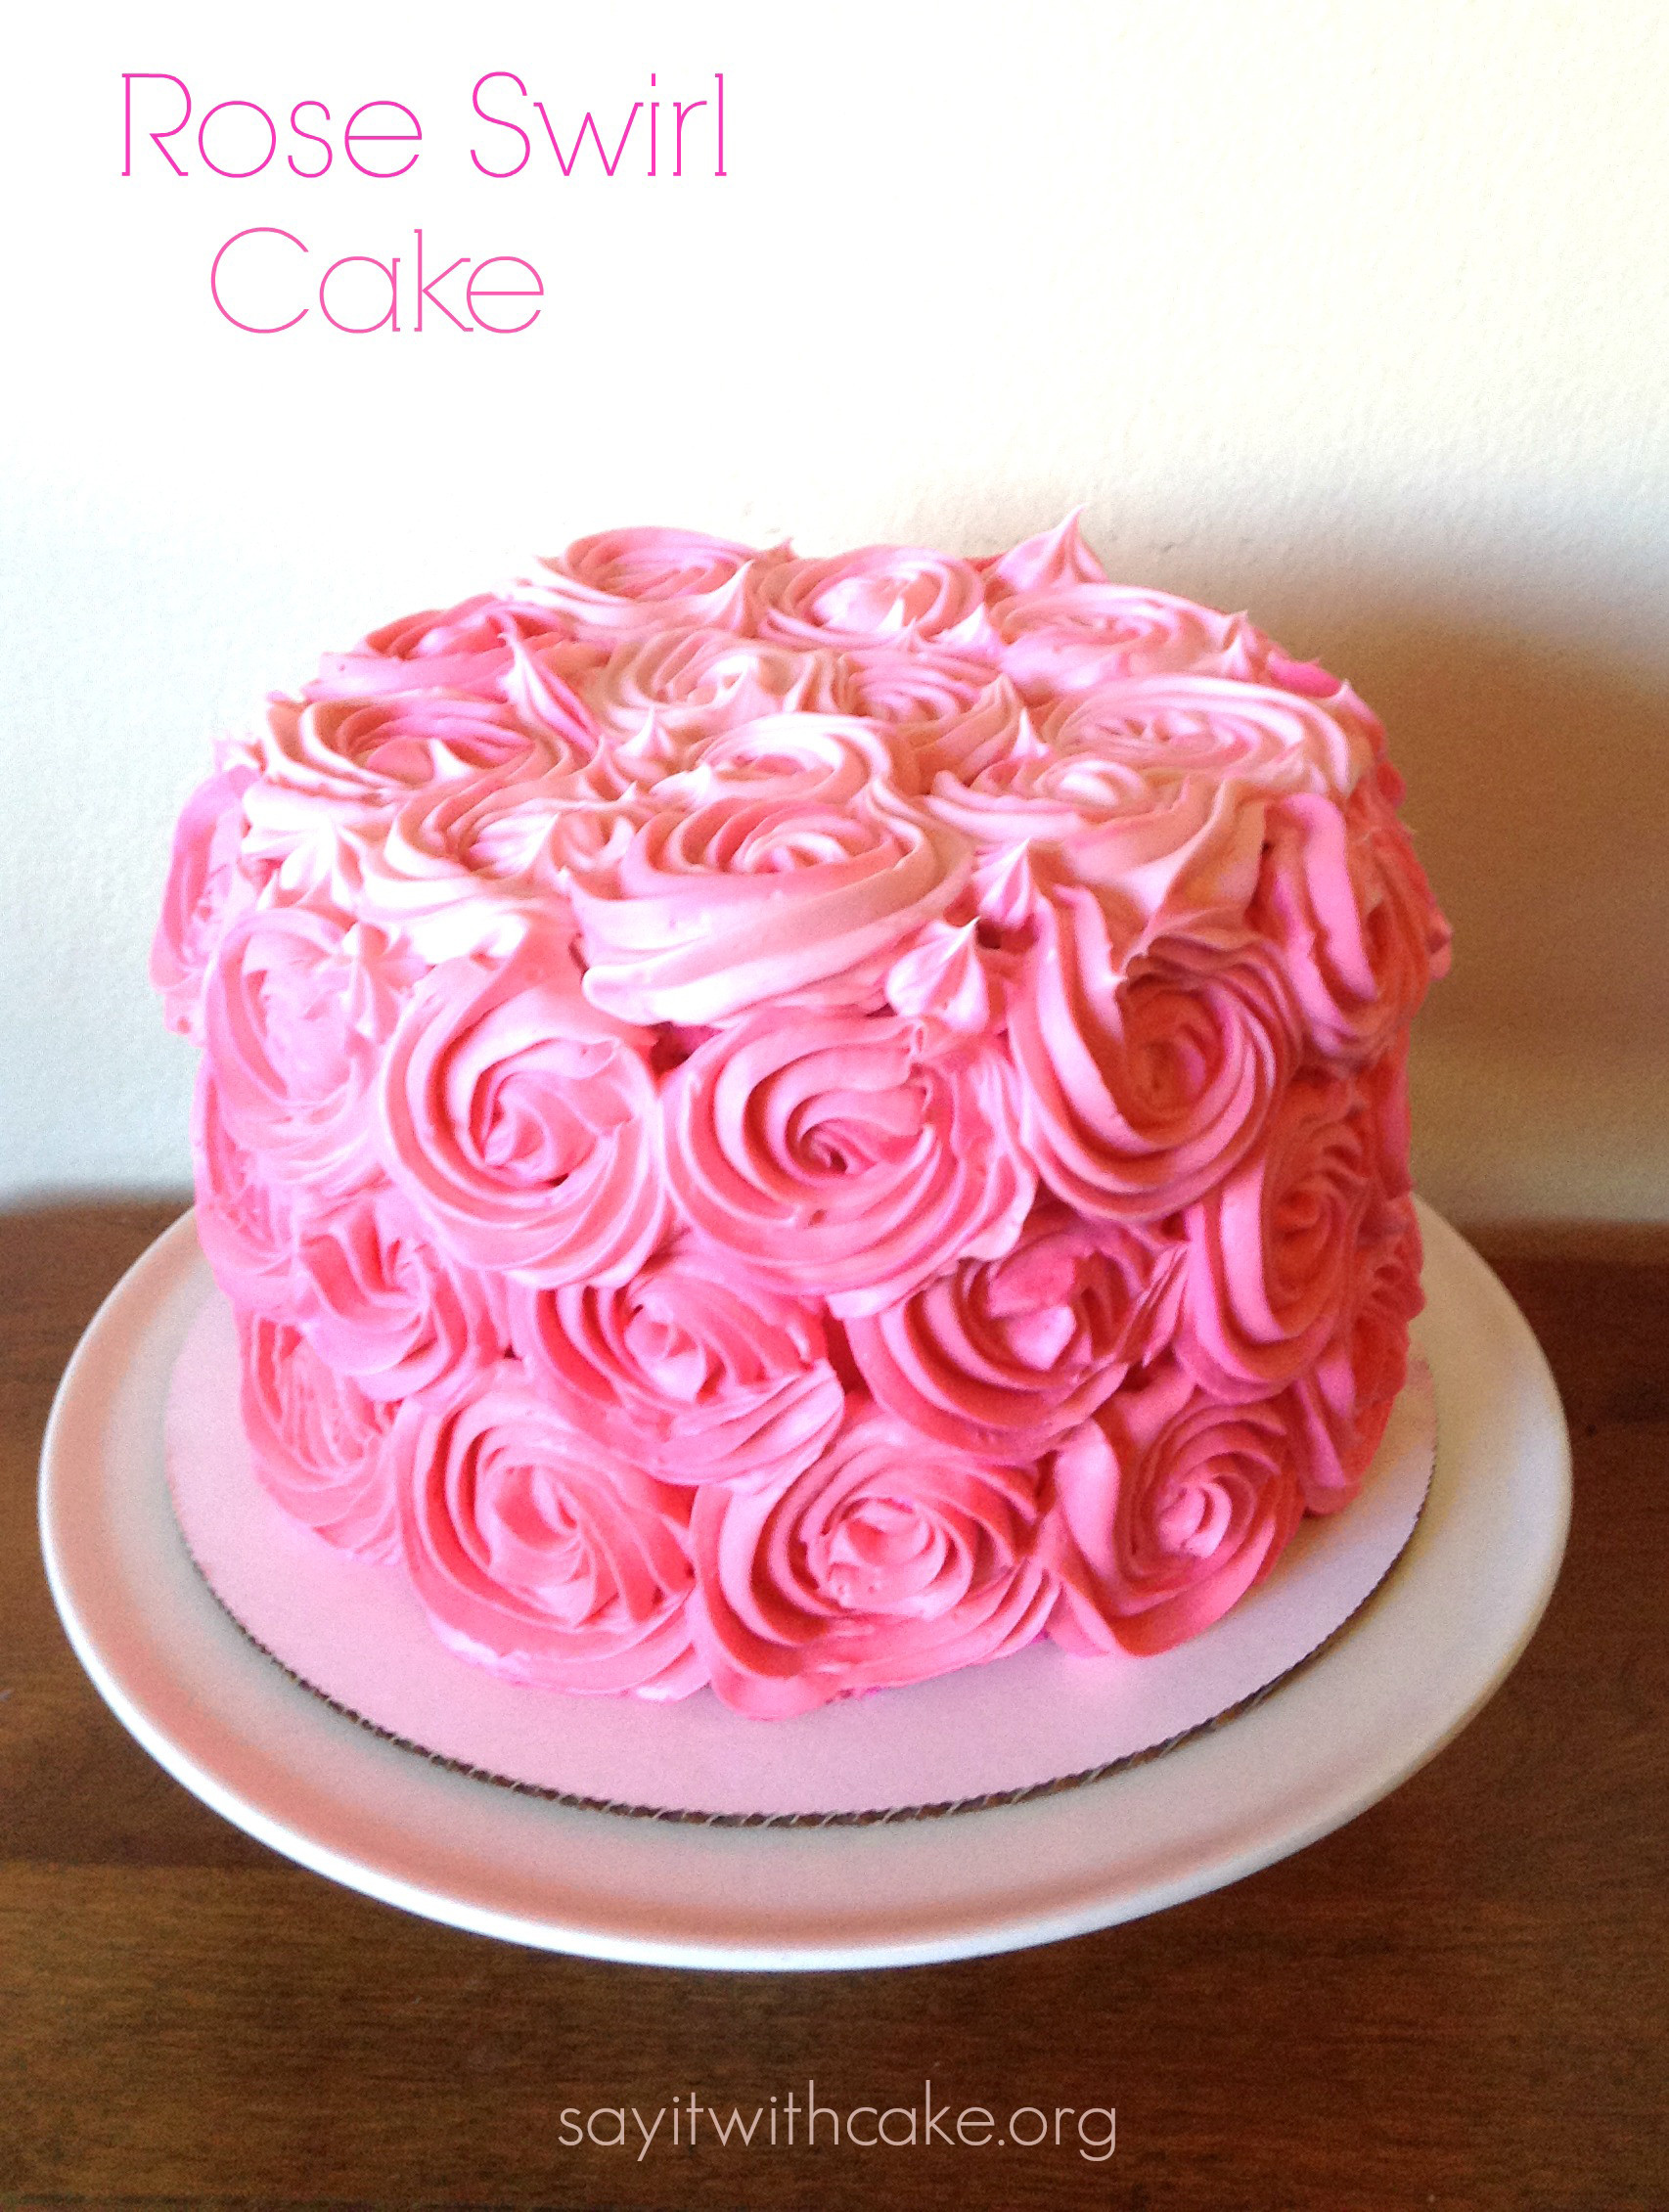 Best ideas about Rose Birthday Cake . Save or Pin Pink Rose Swirl Cake – Say it With Cake Now.